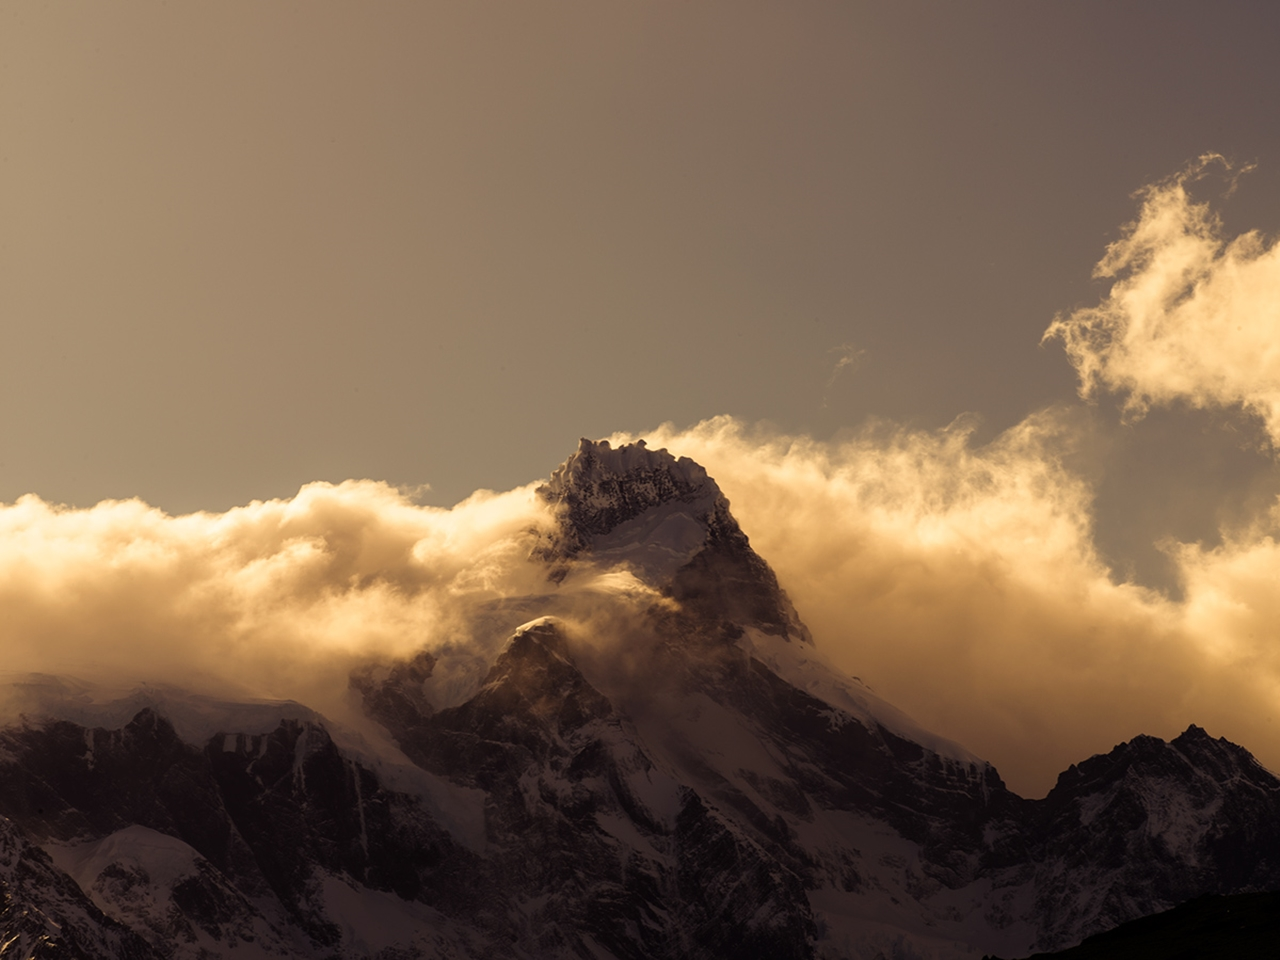 The beautiful scenery mountains Chile photos Andy Lee 15